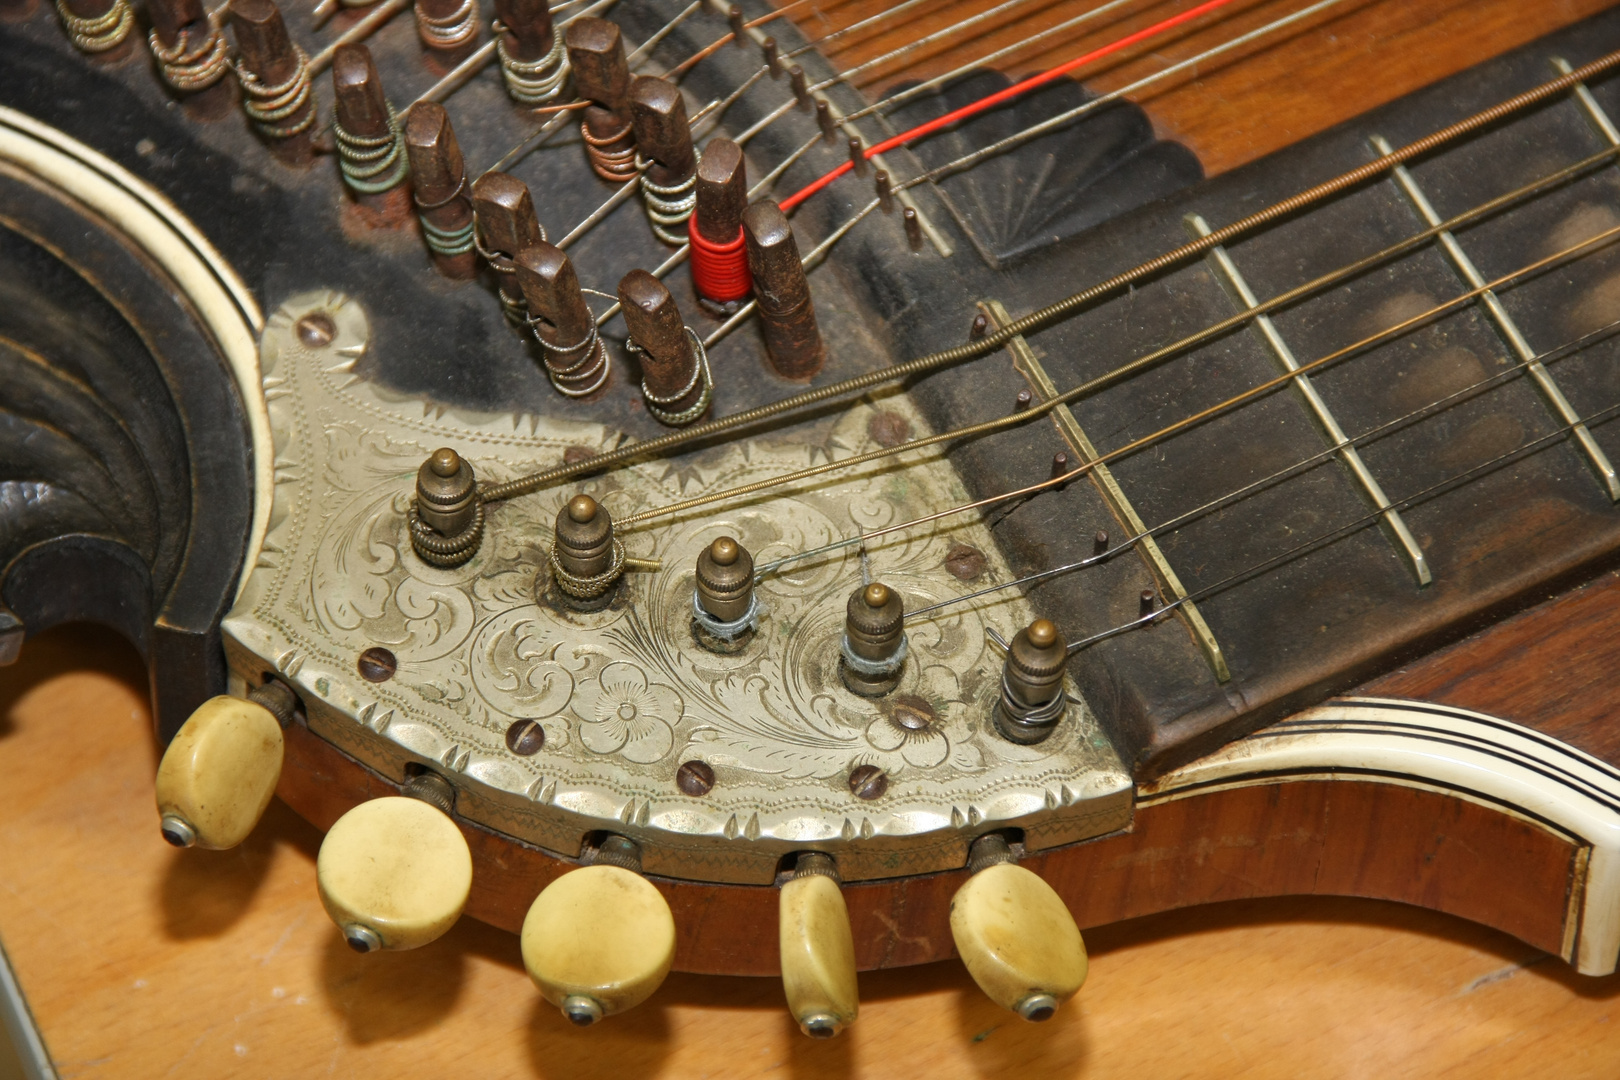 Zitter (Zither)